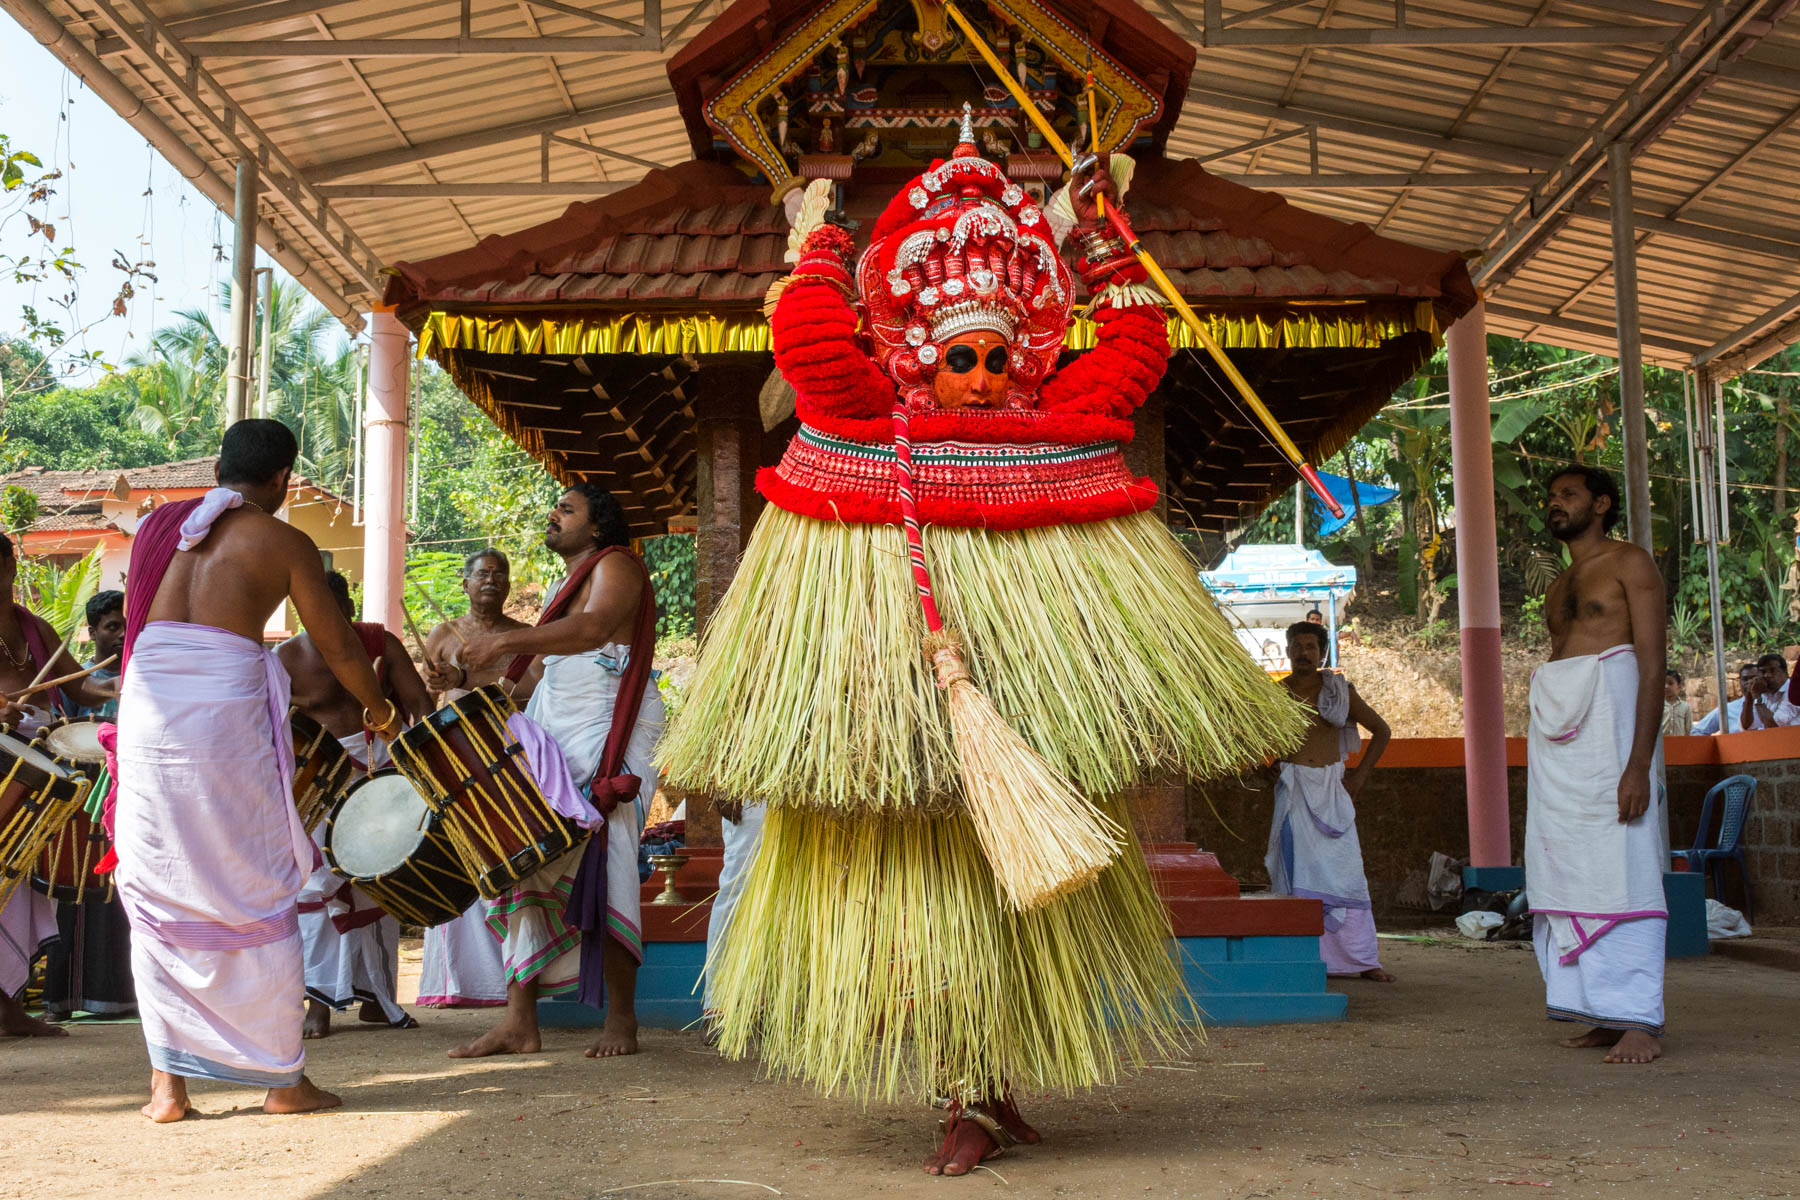 Ritual during the day - Where to see Theyyam in Kerala, India - Lost With Purpose